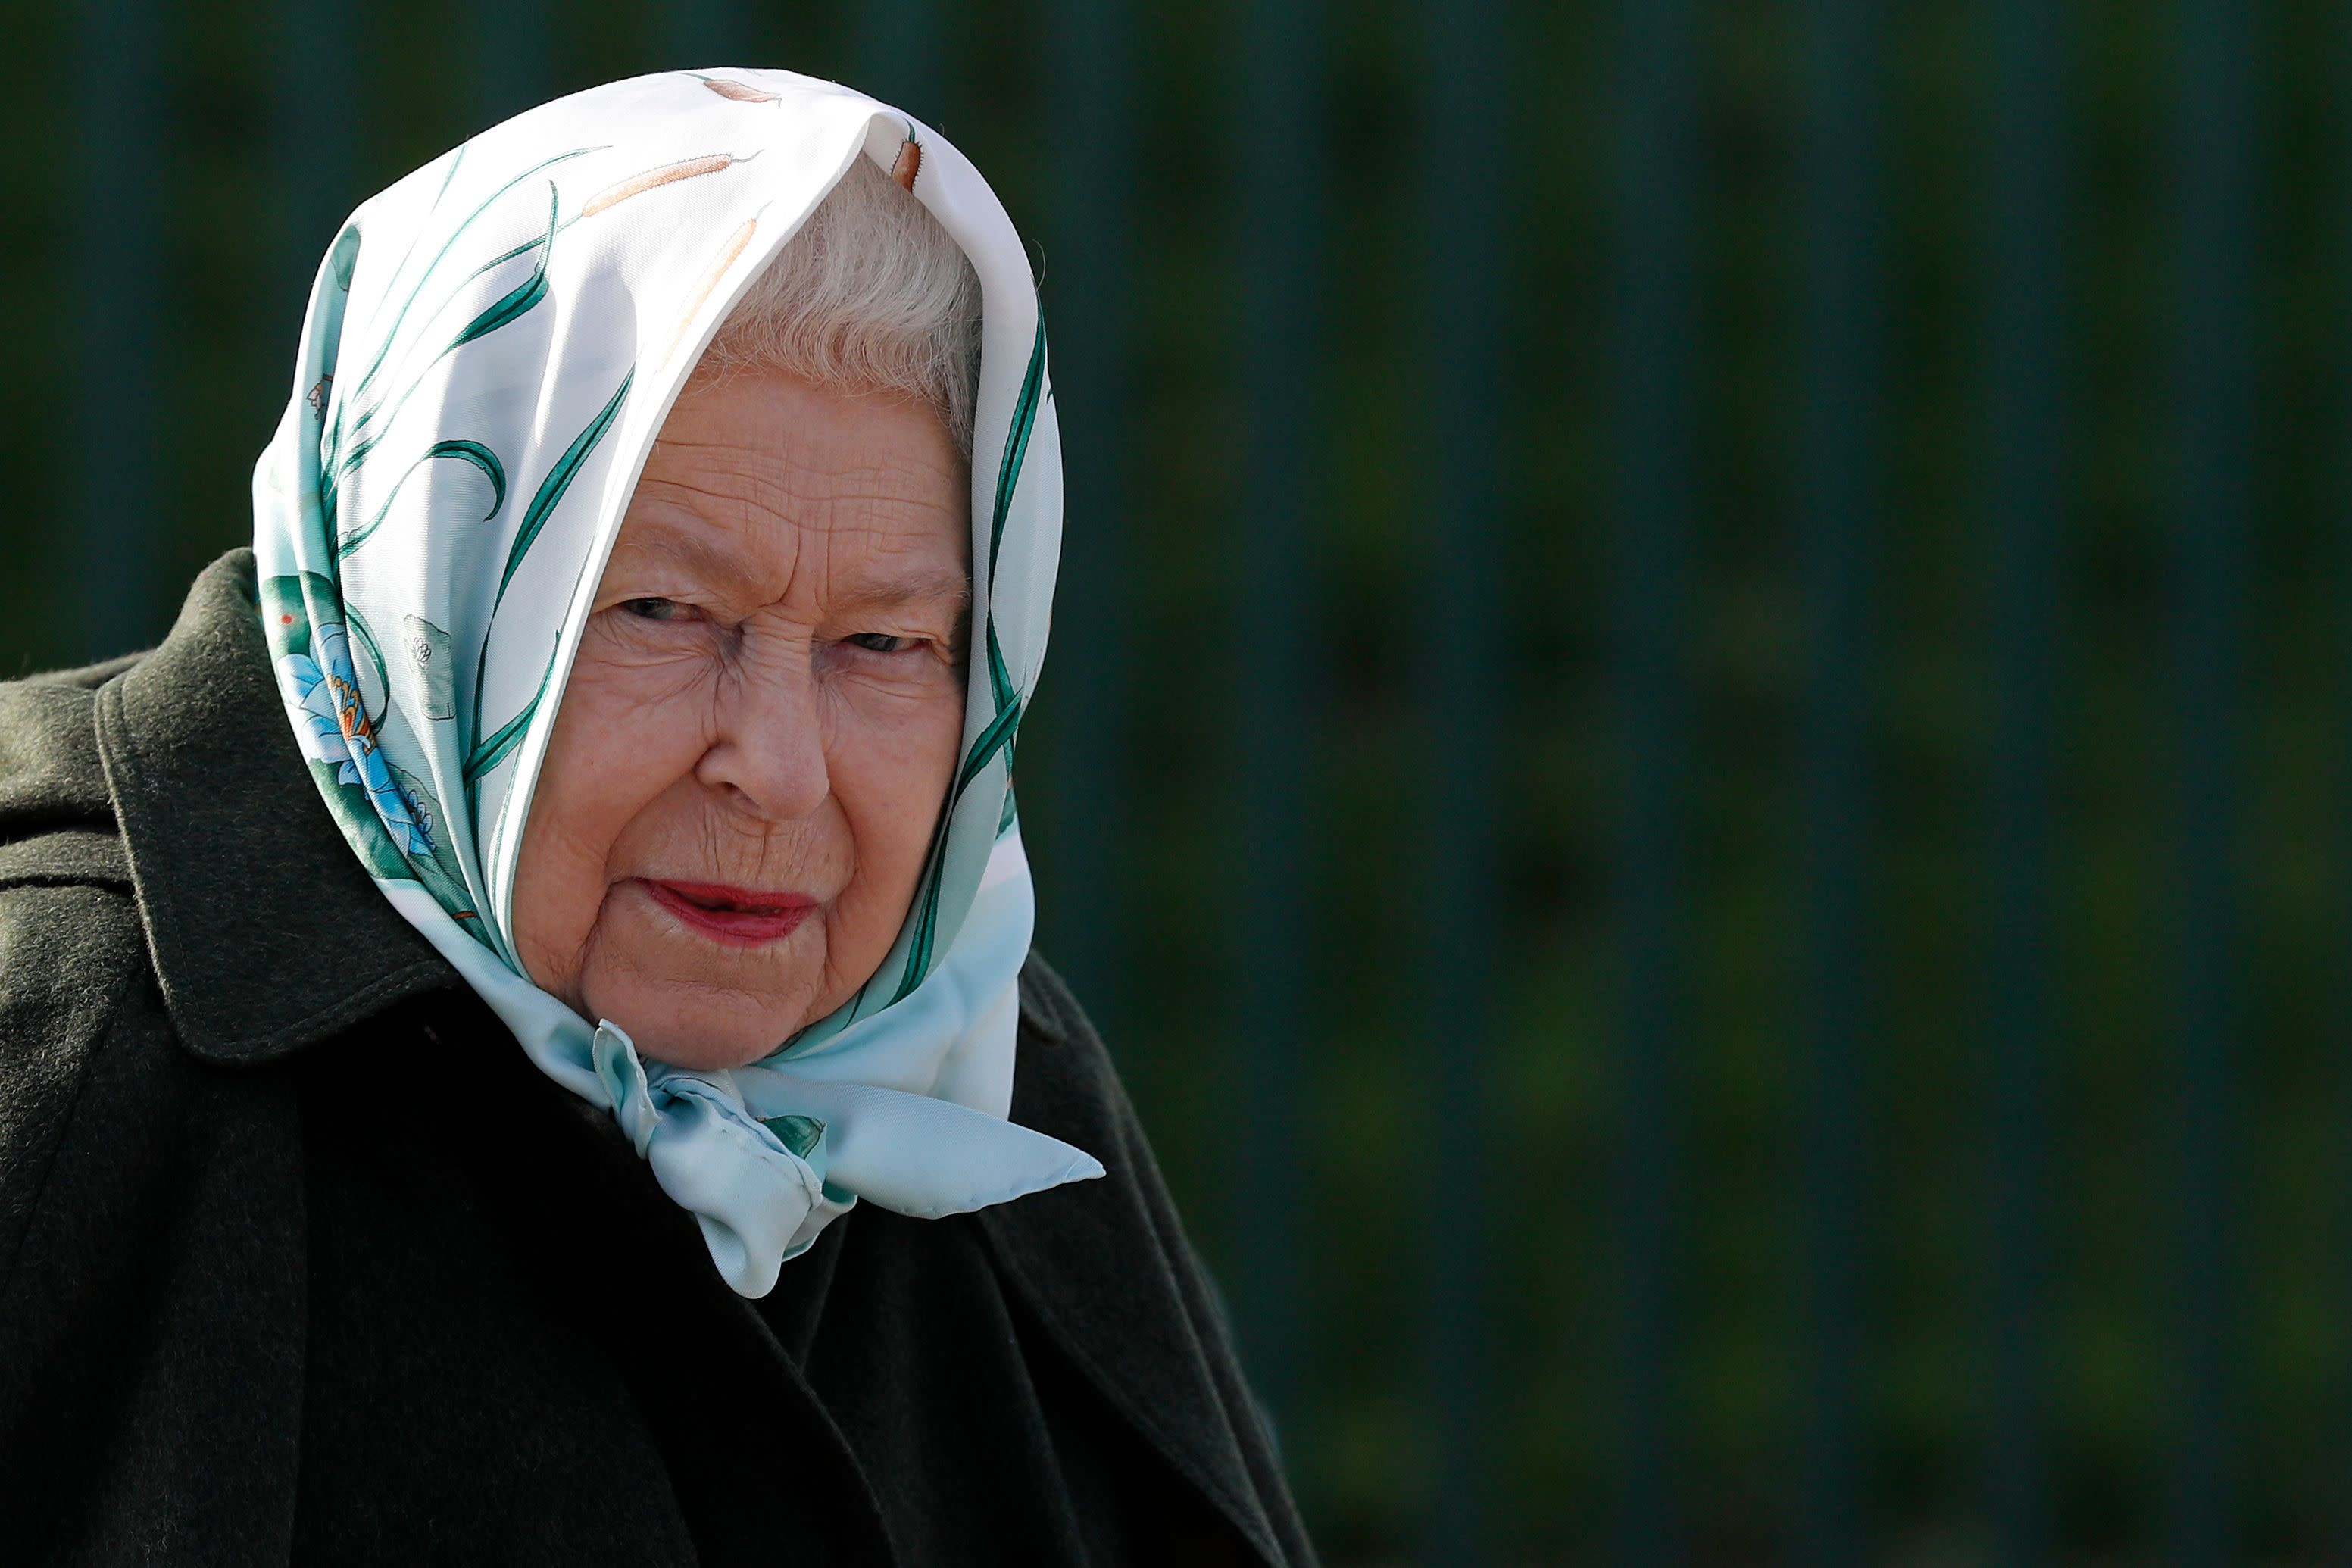 One in five Brits would abolish the monarchy - poll